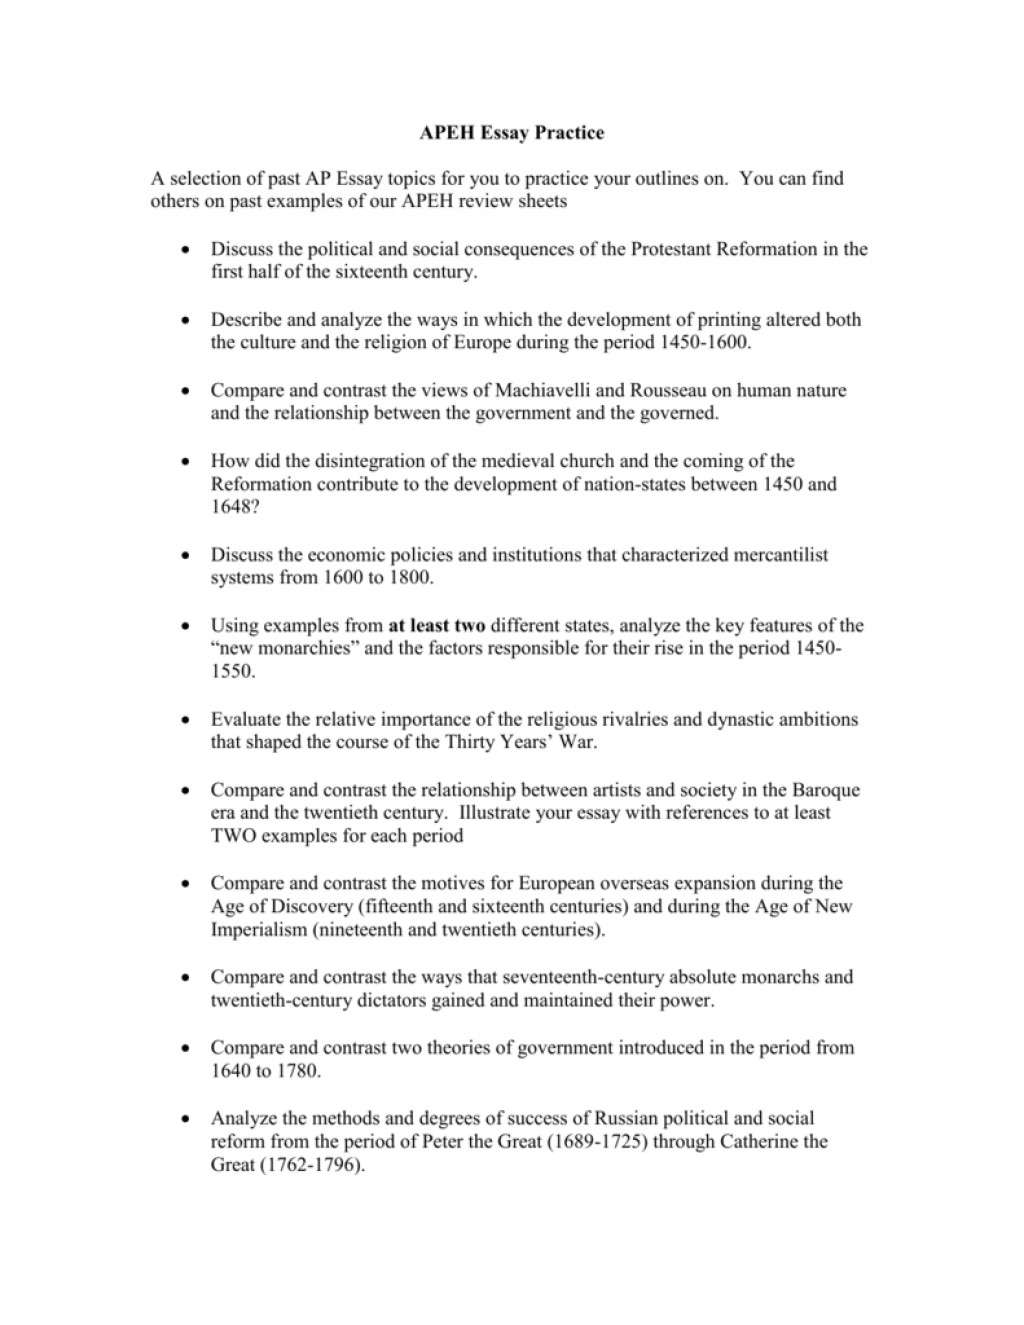 004 Compare And Contrast Cultures Essay Topics Example 008031784 1 Stirring Large